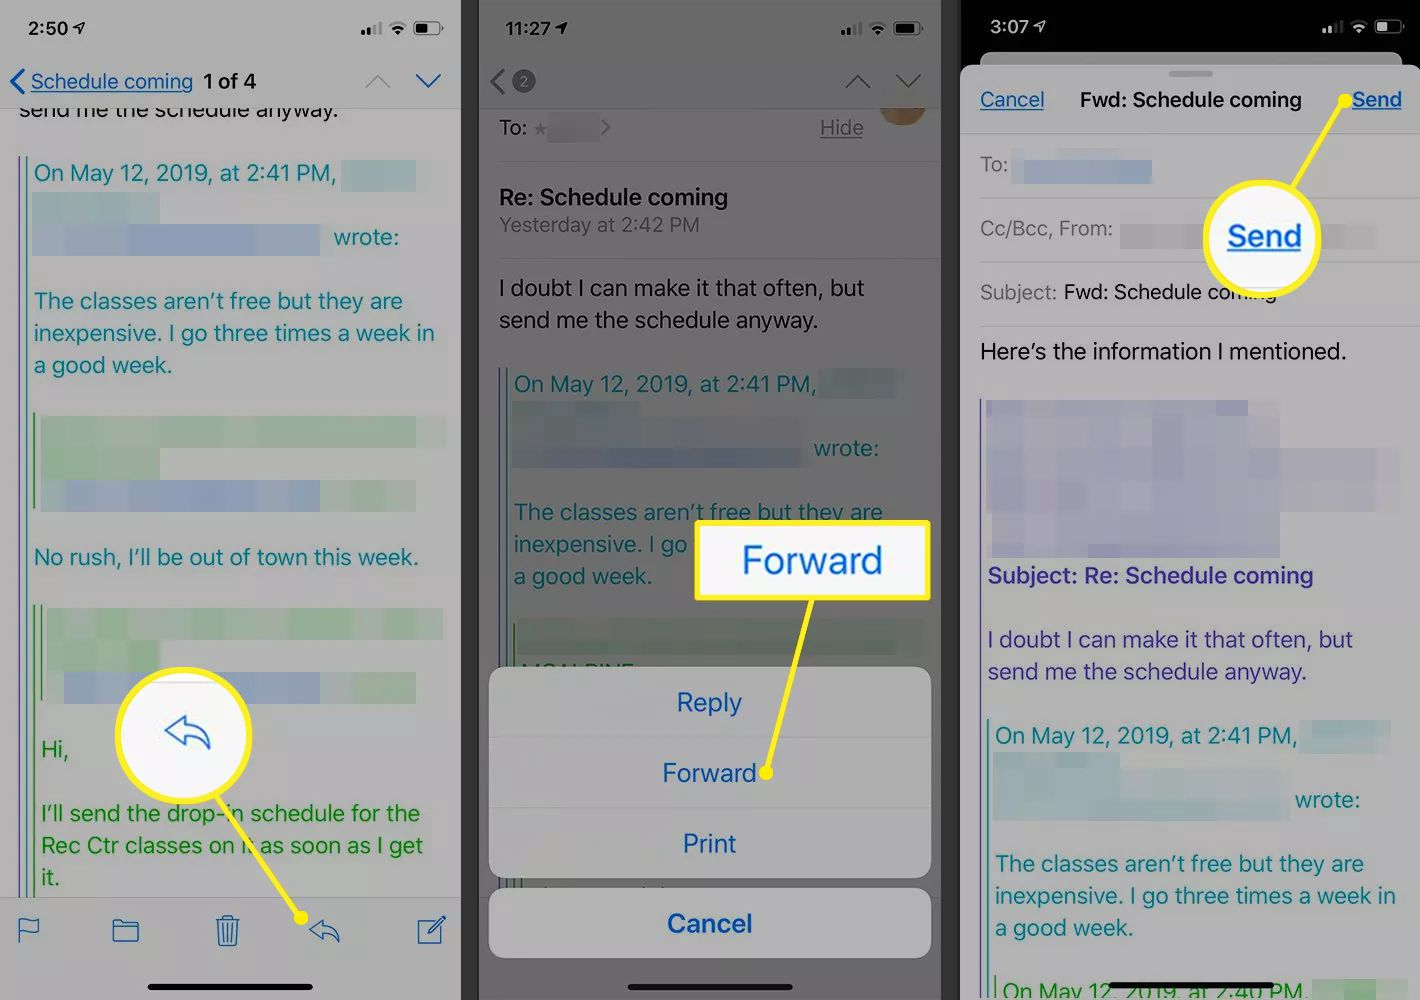 iOS Mail showing Forward button, Forward confirmation and Send button